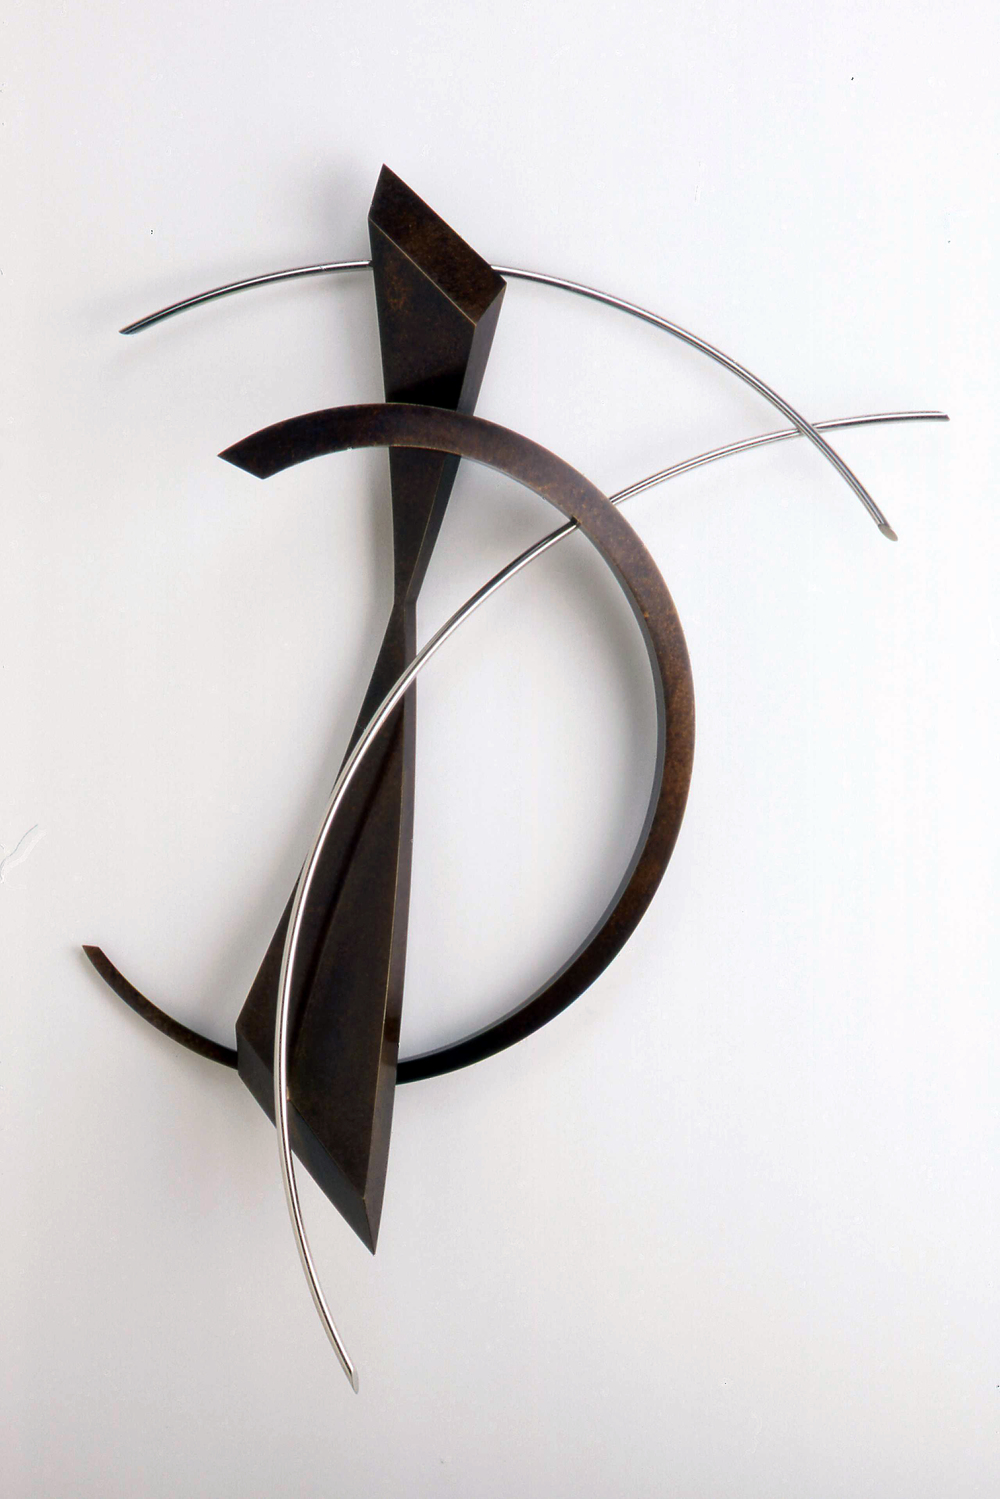 Entropy Series #37, bronze